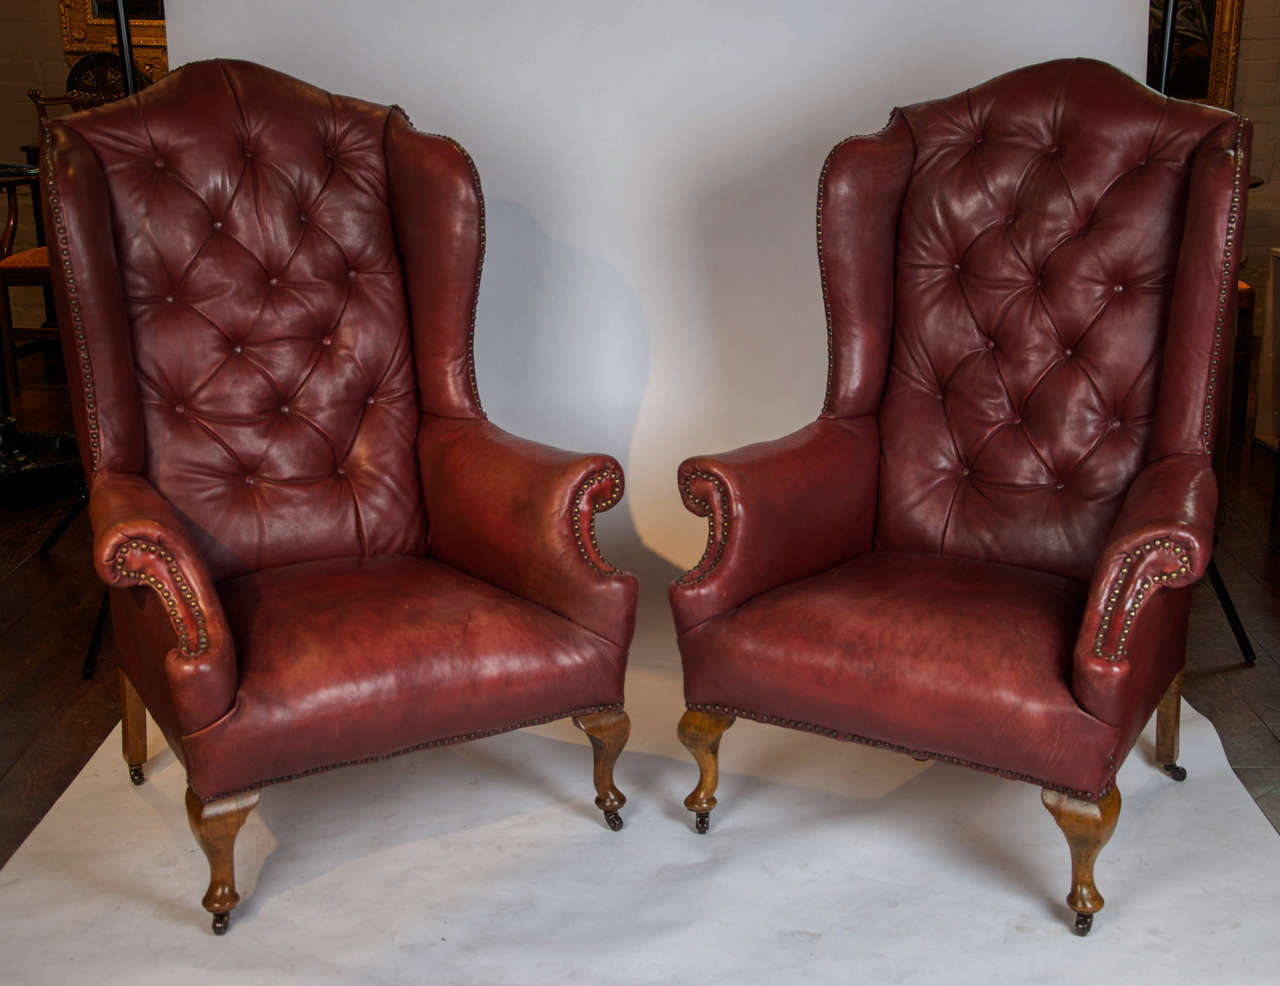 A Good Pair Of Early 20th Century Wing Back Chairs With Original Read  Leather And Buttoned